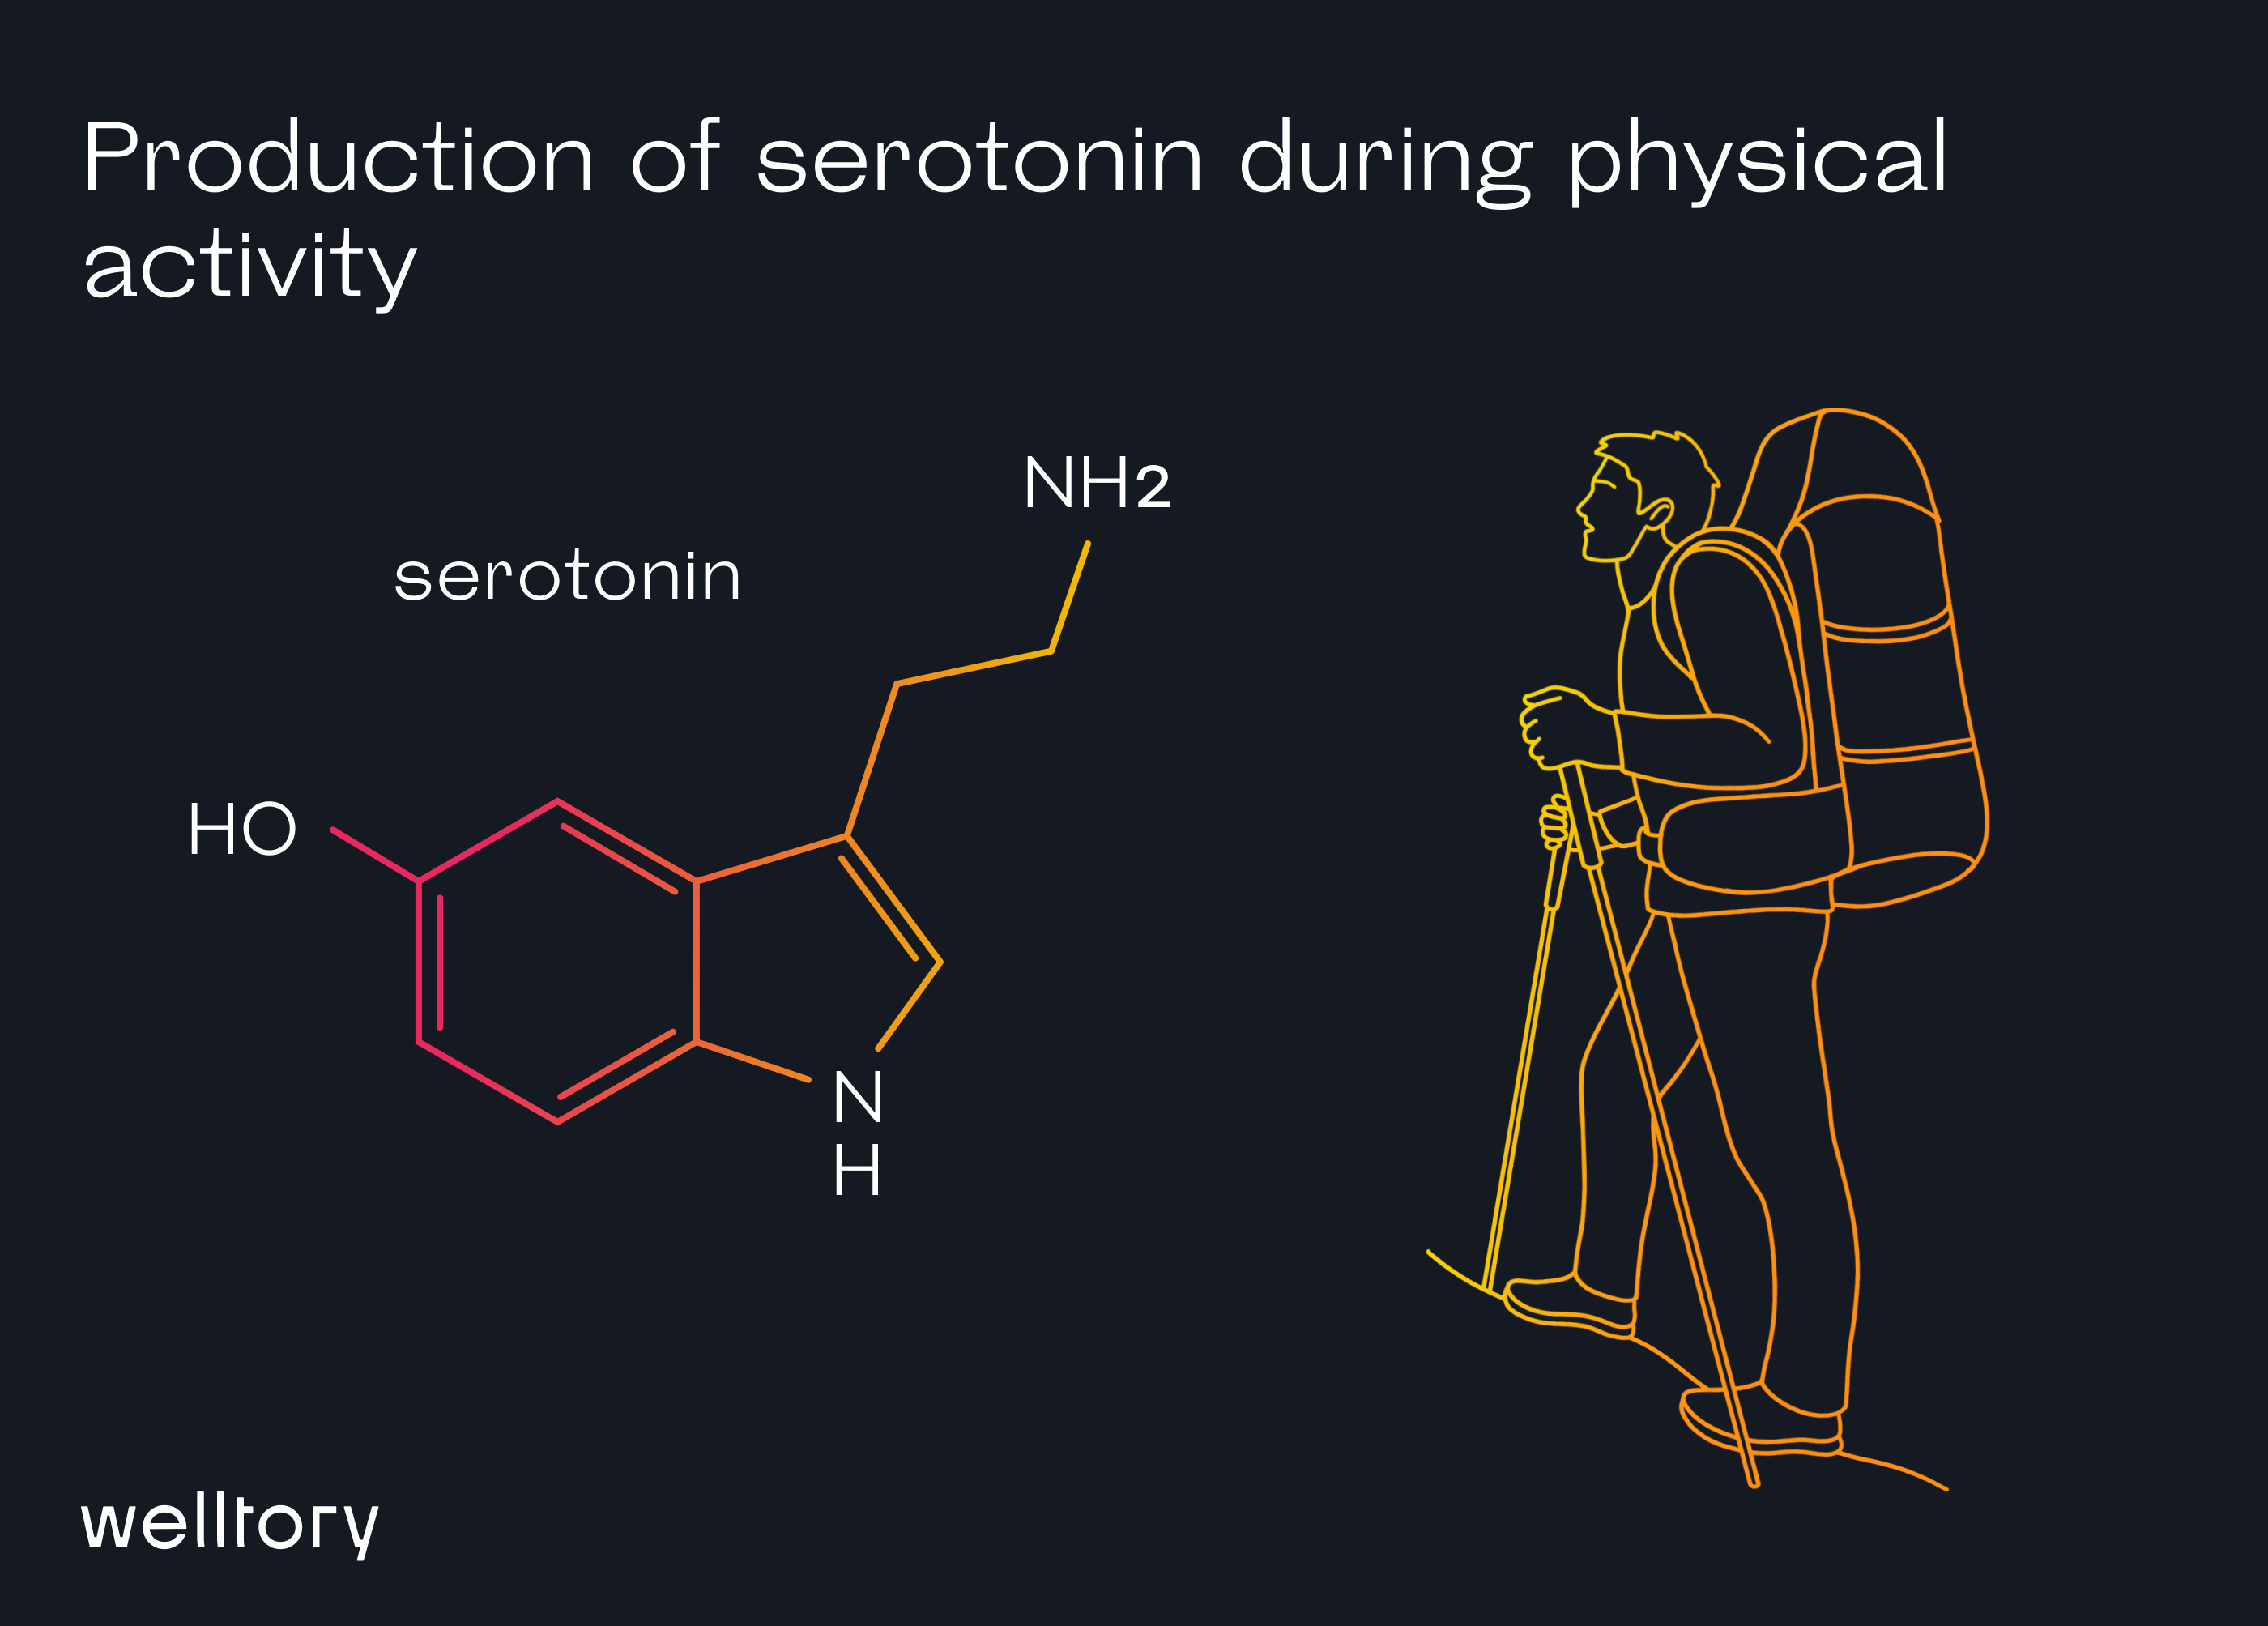 Production of serotonin during physical activity